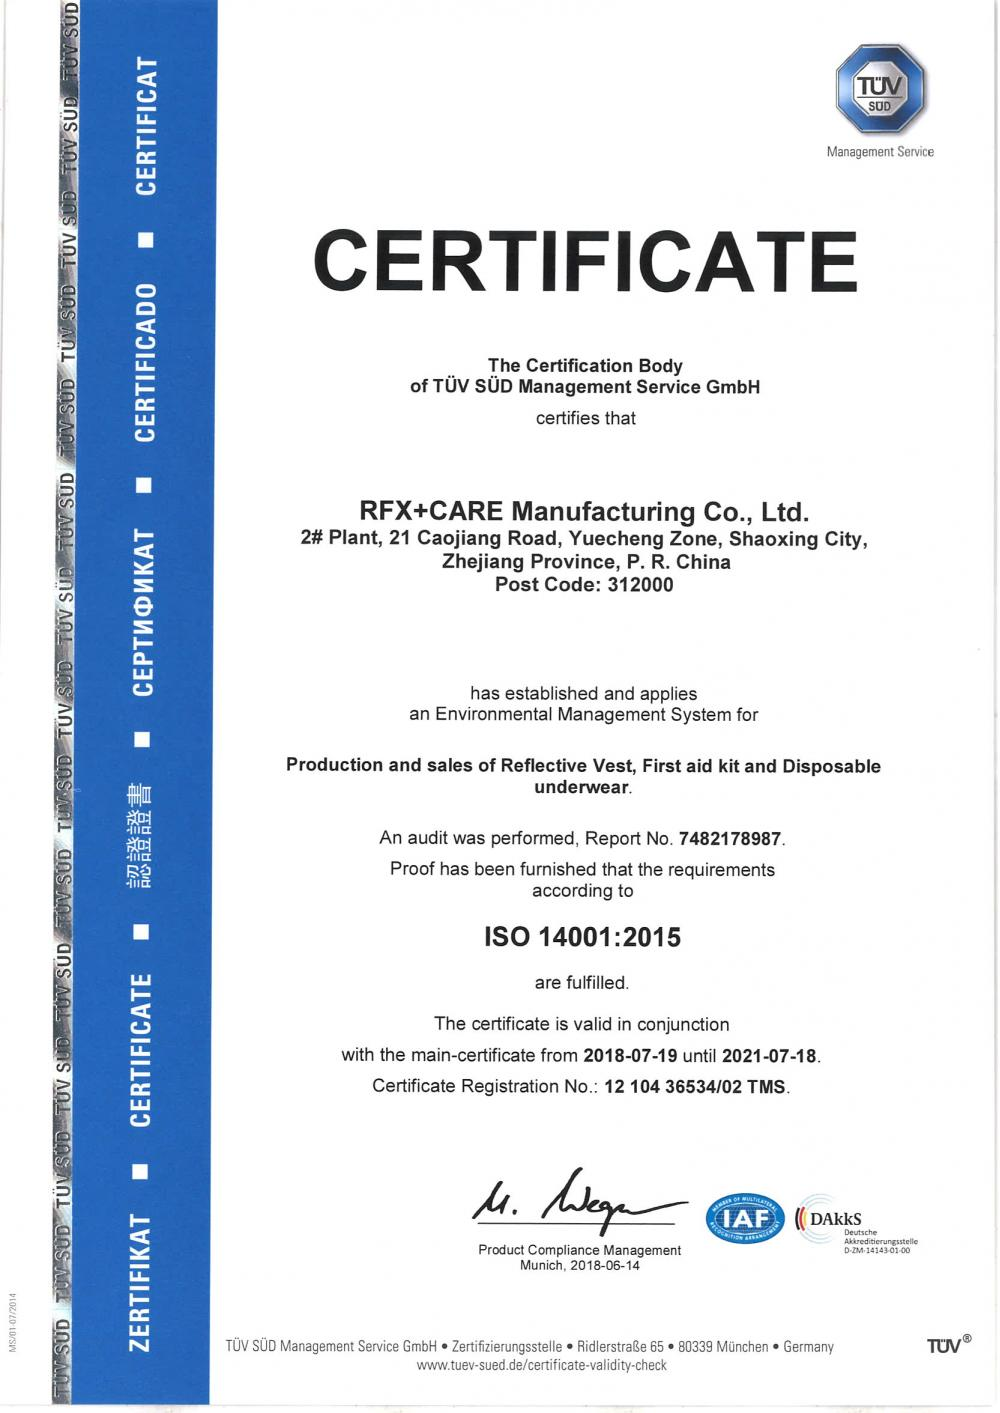 ISO 14001 2015-CAOJIANG ROAD